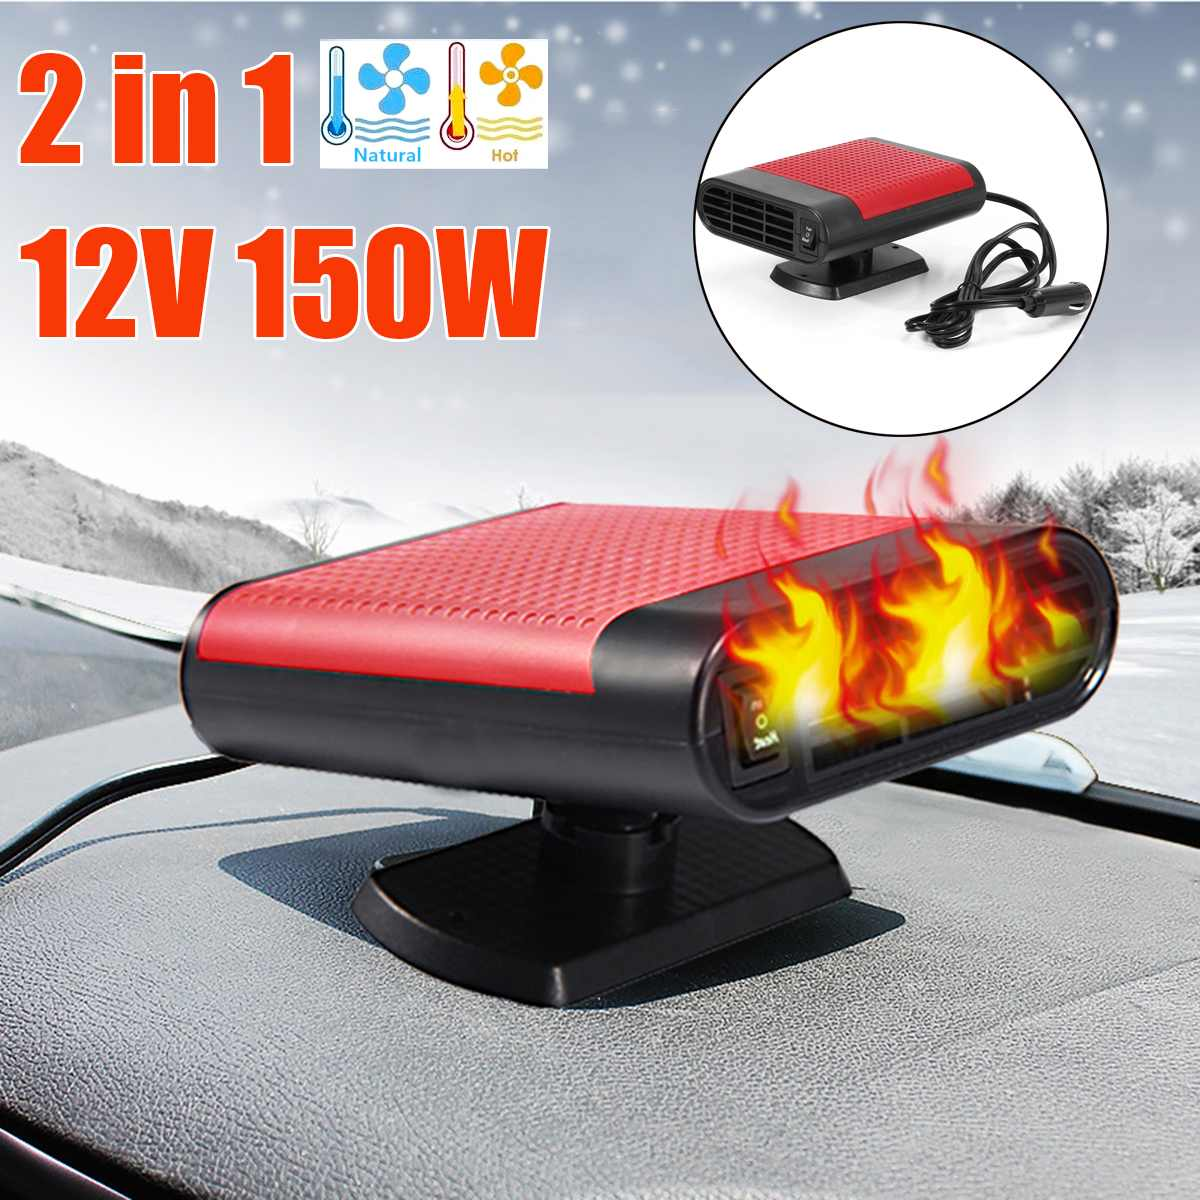 Car & Truck Parts Buy Cheap 3 Hole Dc 12v Auto Car Heating Cooling Heater Defroster Demister Universal 80w